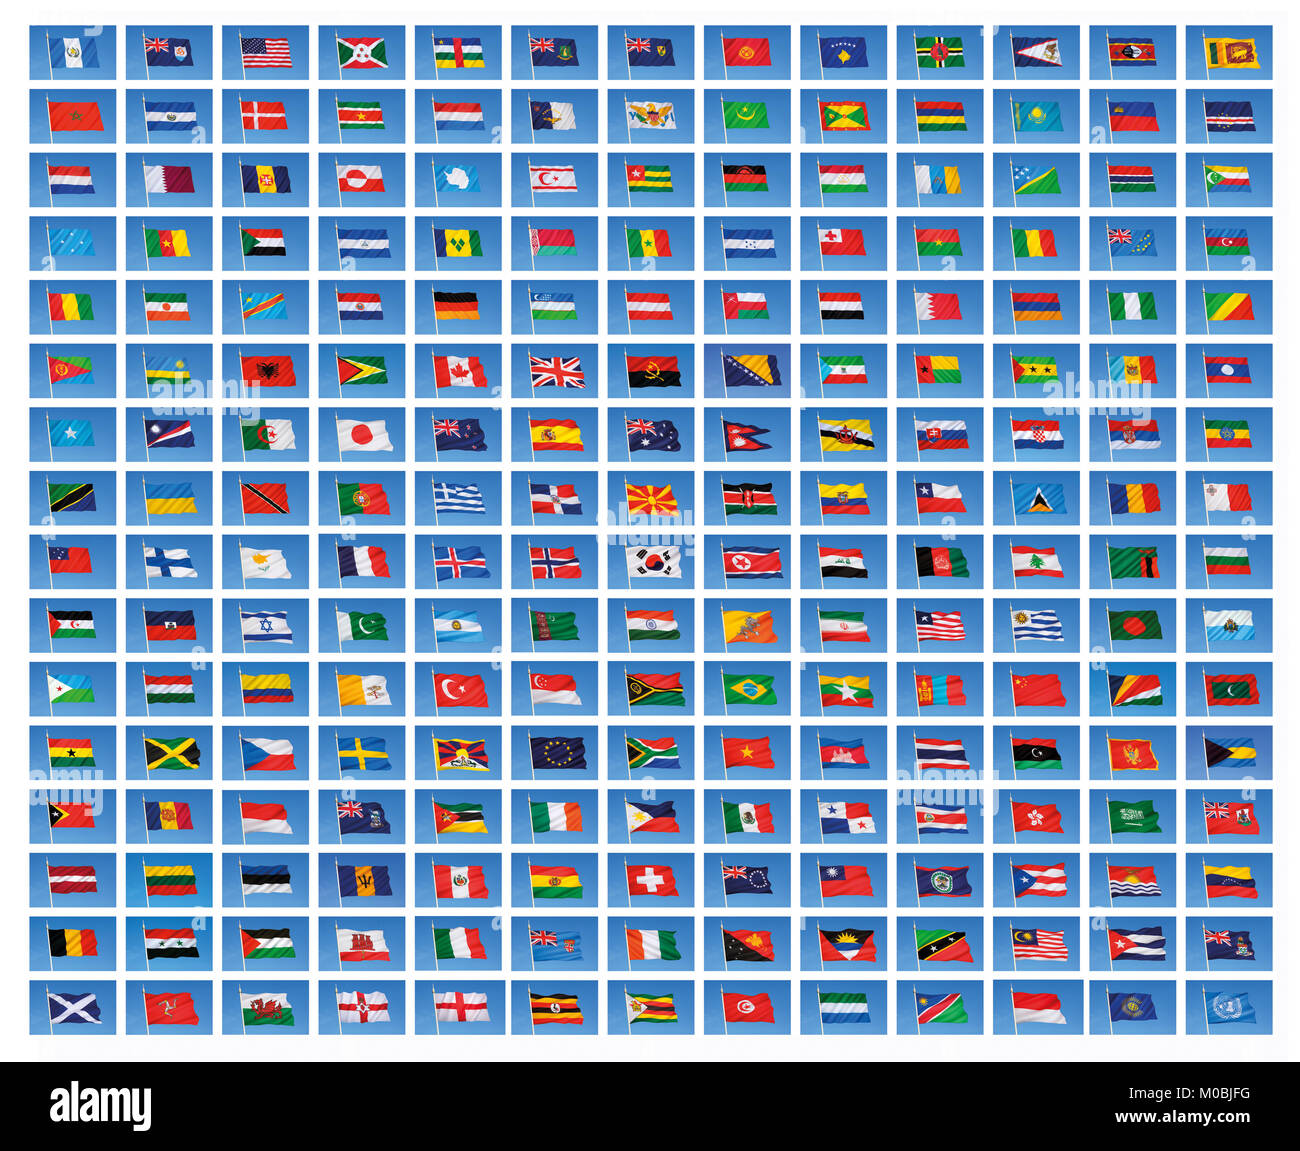 Wallpaper Of The Flags Of The World The National Flags Of